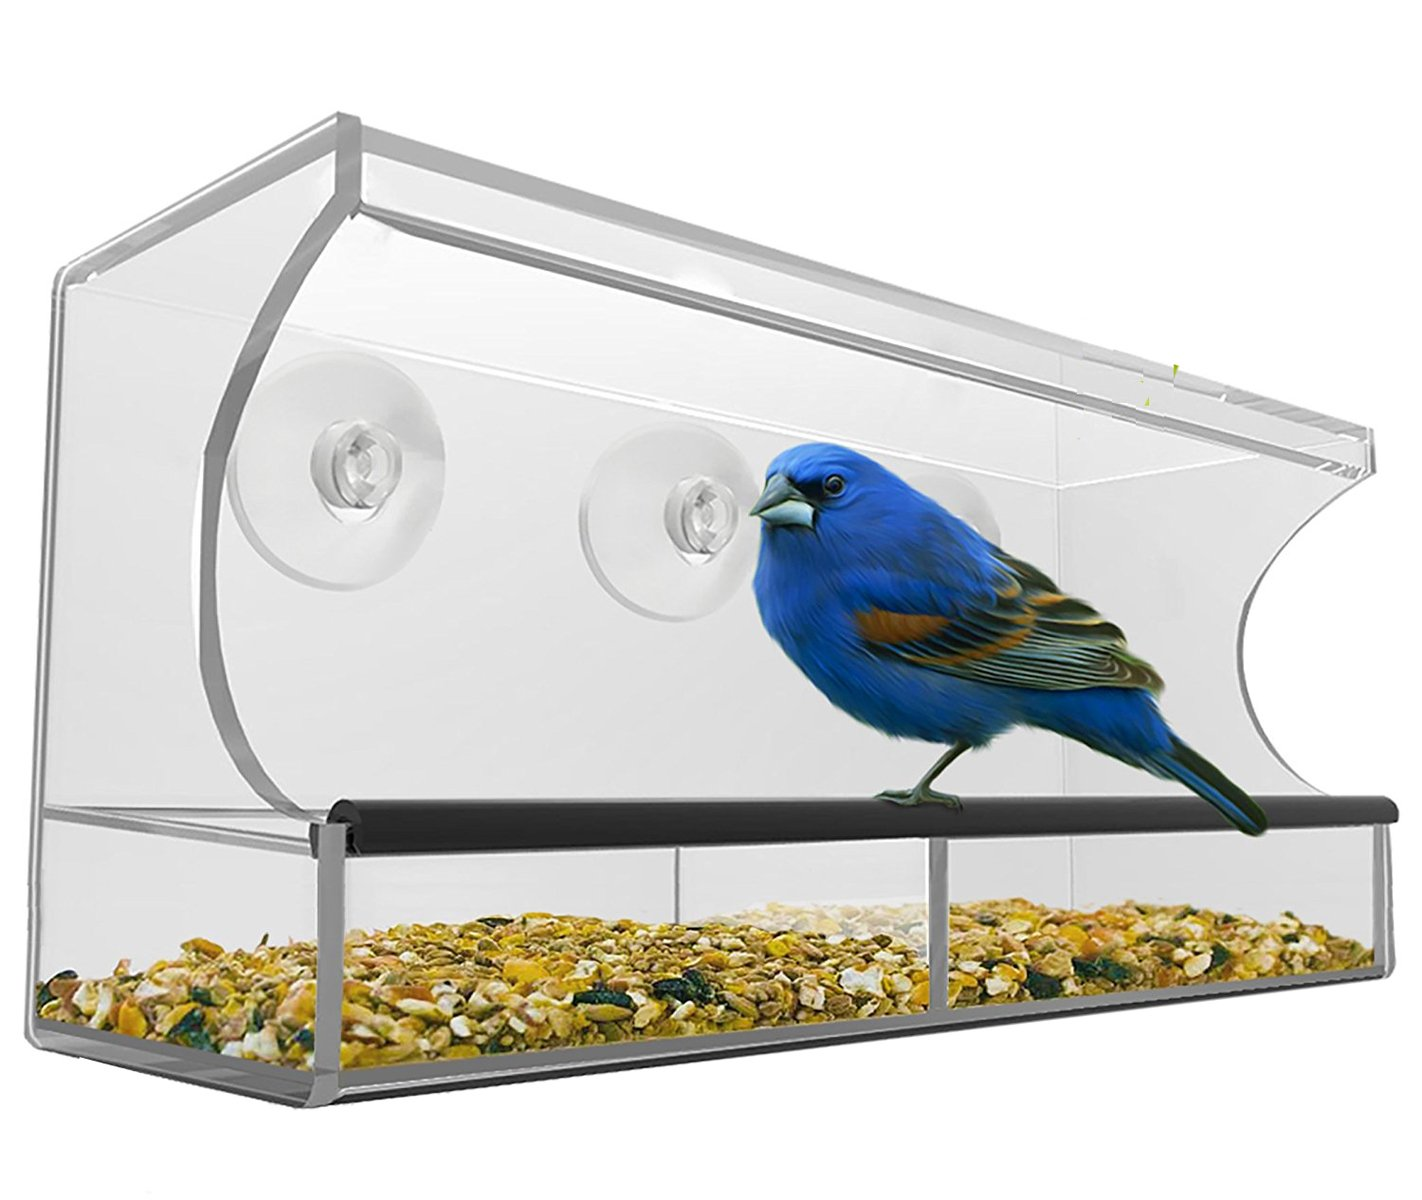 T Tocas Large Window Pet Birds Feeders with Tray and 3 Suction Cups, Acrylic Clear Window Hold BPBF657